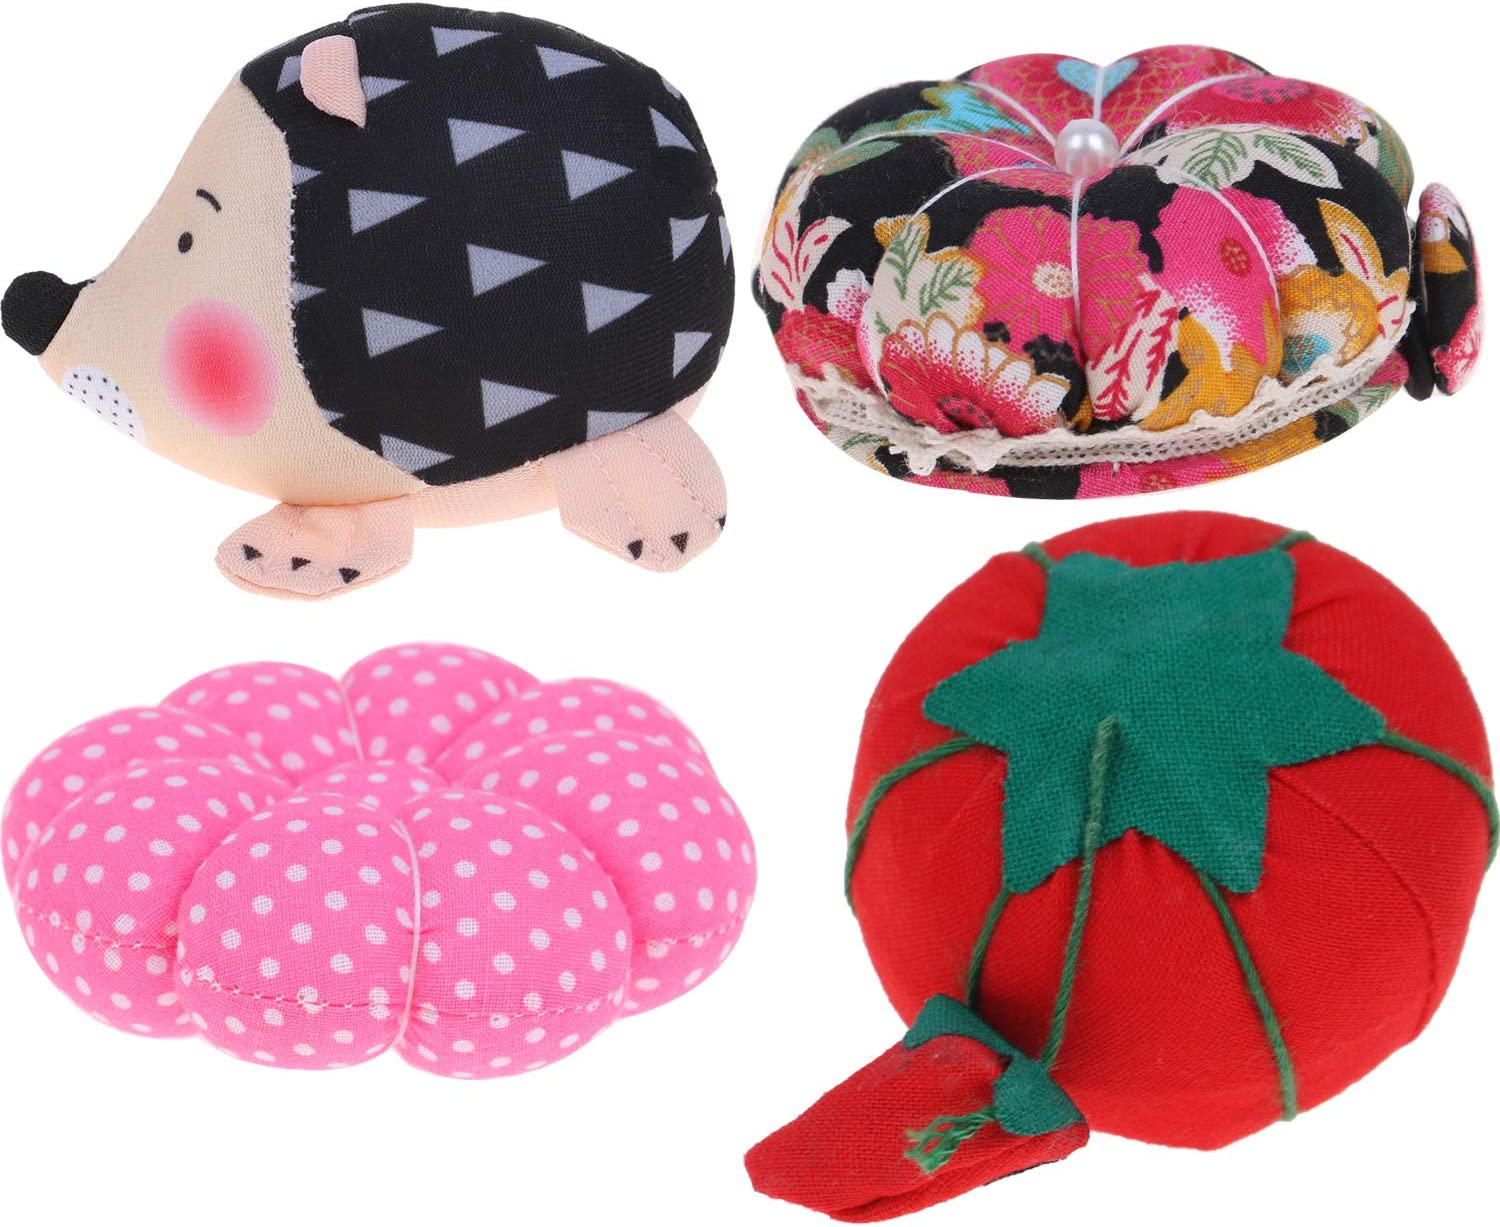 4PCS Pin Cushions Wrist Strap Pin Cushions Sewing Wearable Needle Pin Cushions for Sewing Accessories or DIY Crafts